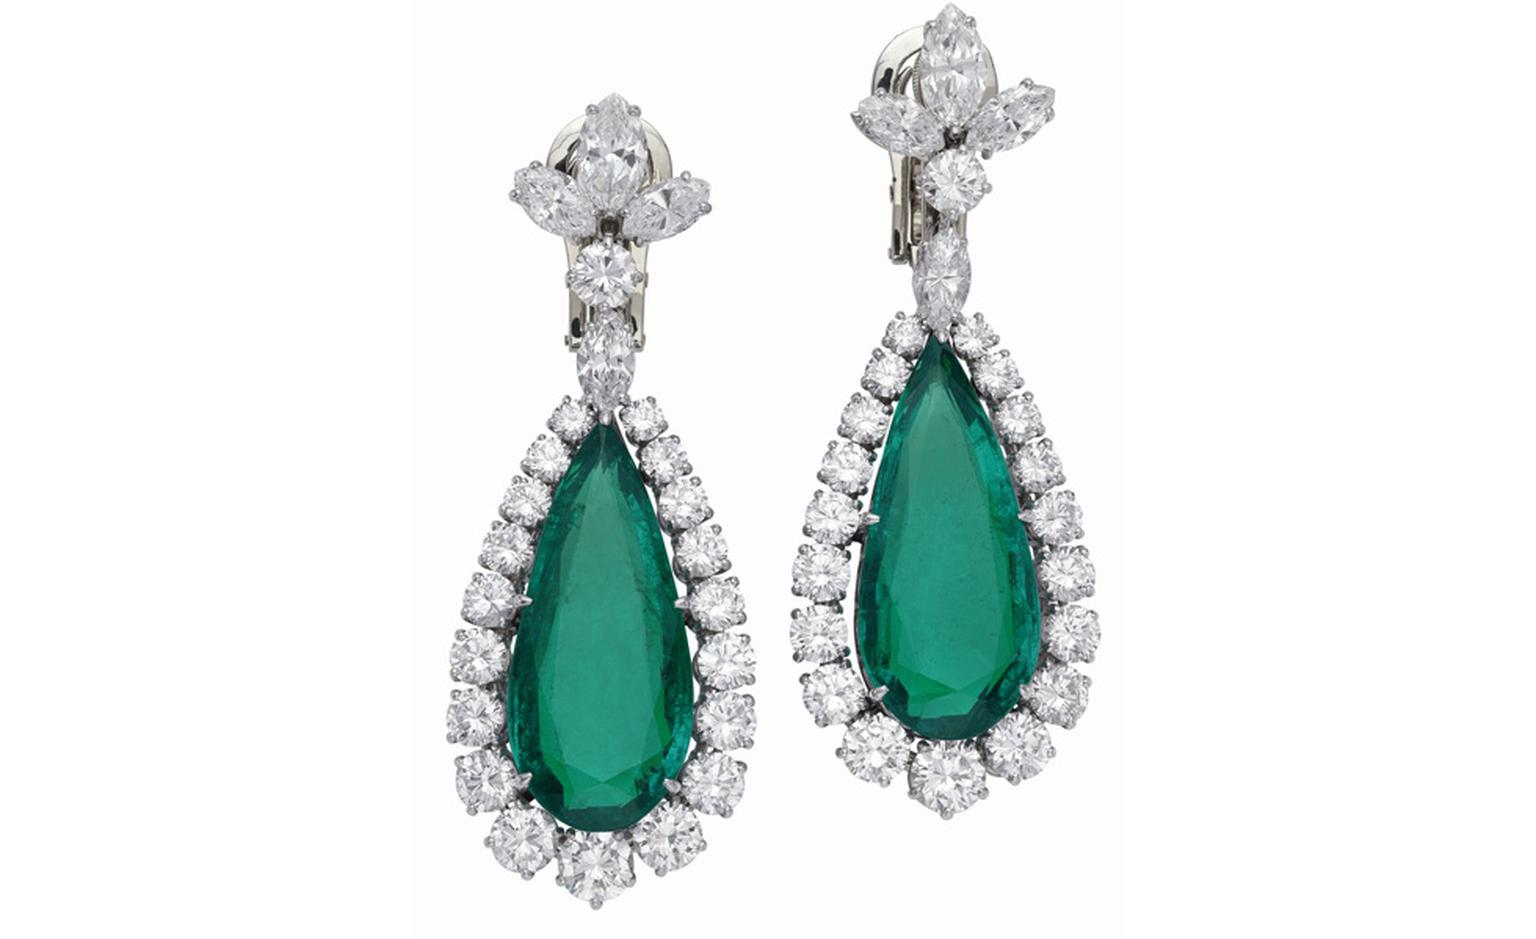 Bulgari Emerald earrings that were part of a parure by Bulgari and given to Elizabeth Taylor by Richard Burton